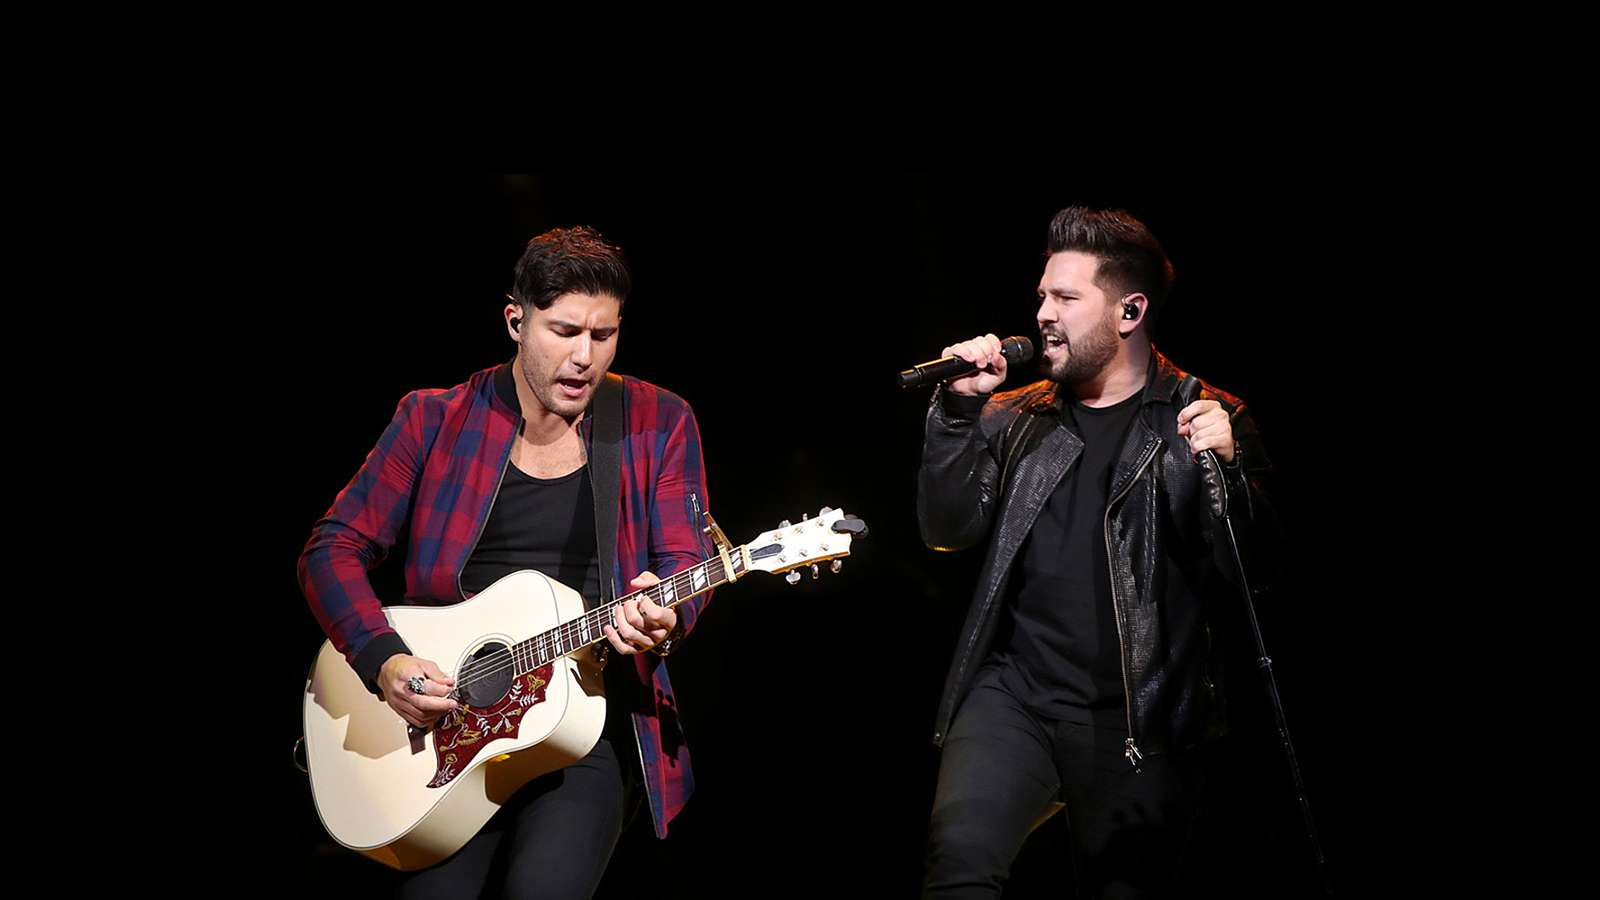 Dan and Shay (Rescheduled from 10/30/2020)